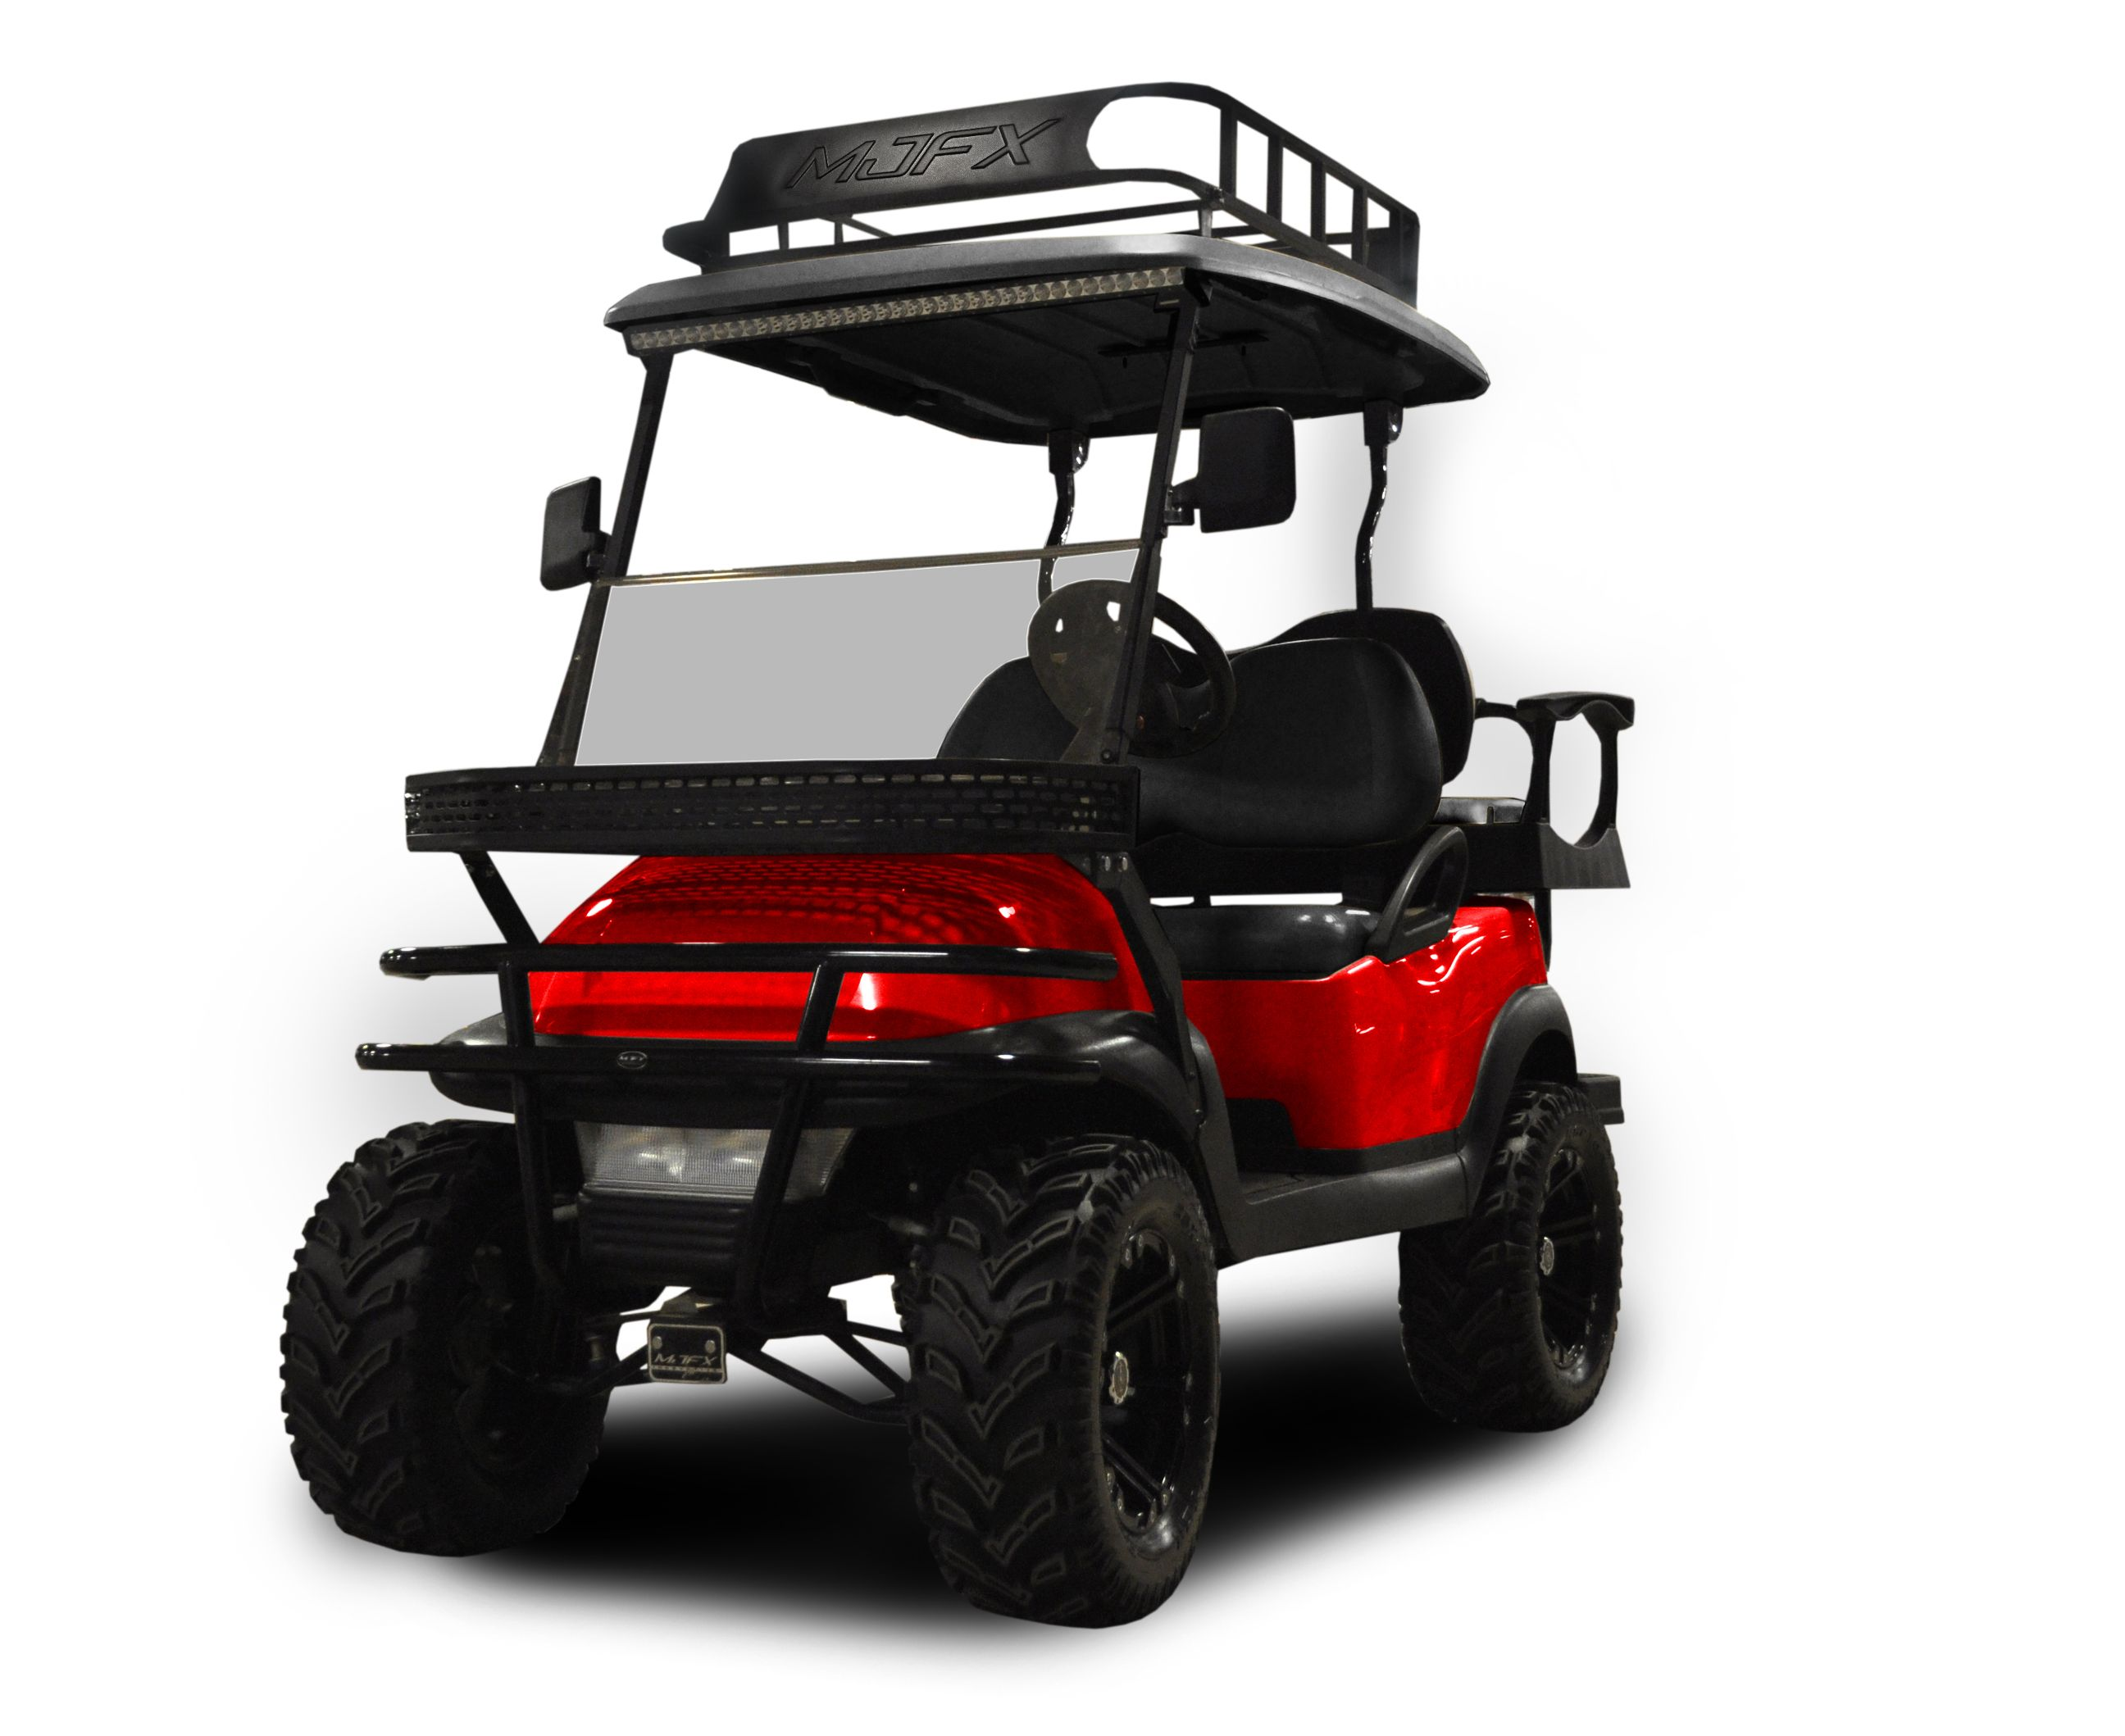 Golf Cart Tops Roofs Canopies Soft Convertible Solar Wiring Diagram 48 Volt For A 2010 Club Car Ds